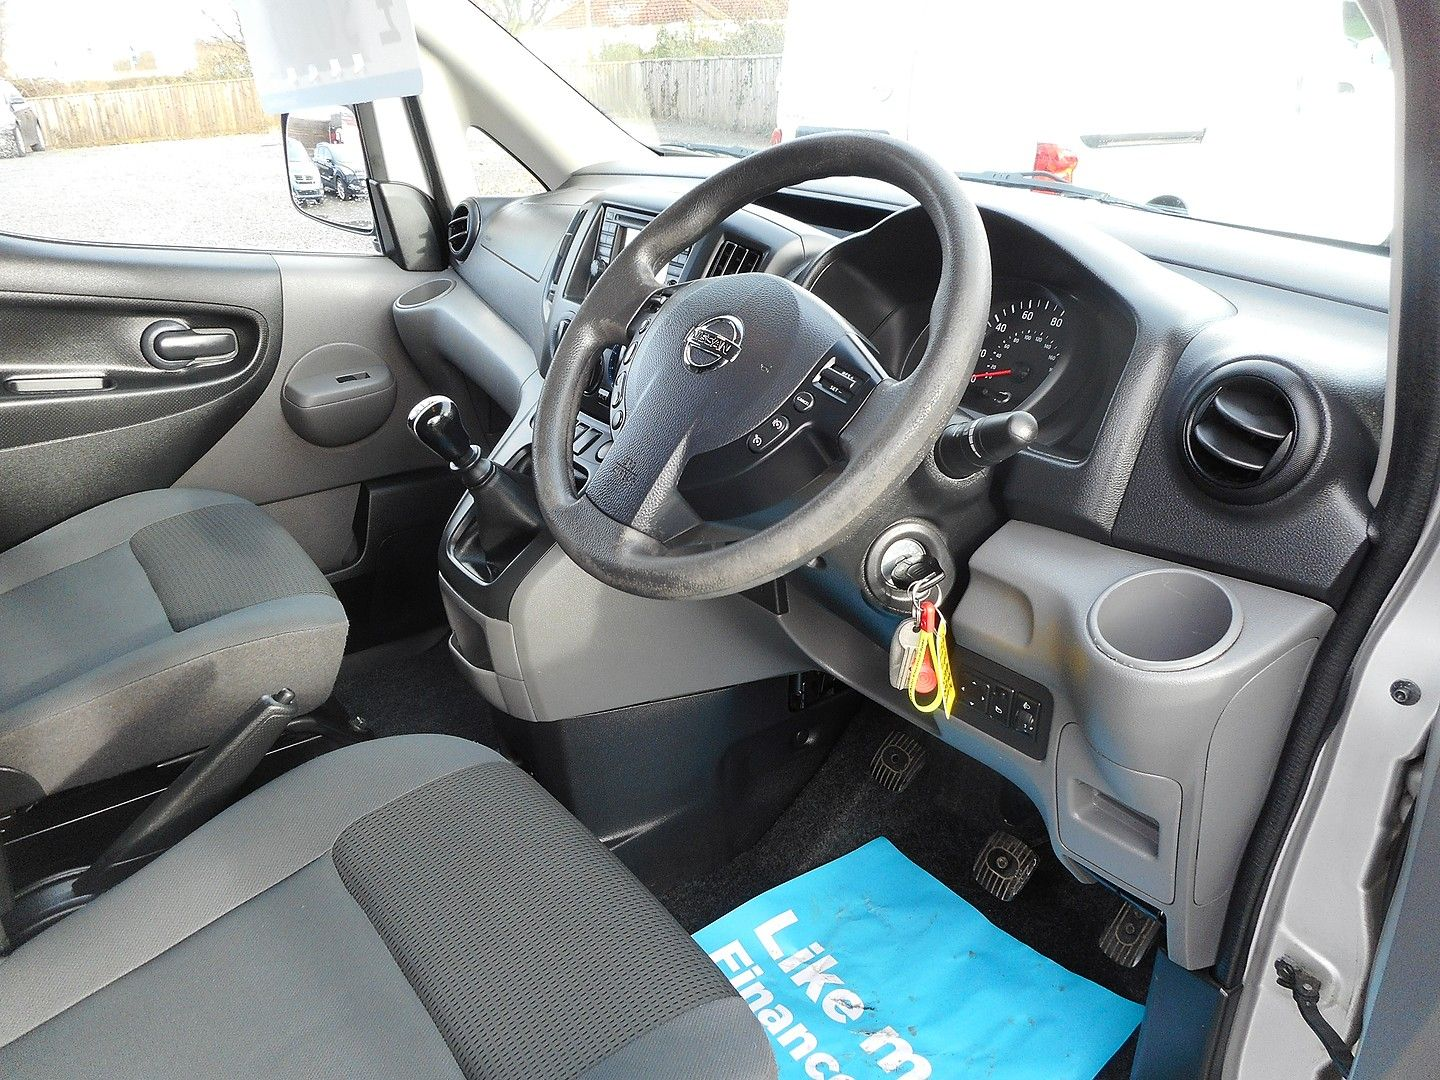 NISSAN NV200 Tekna 1.5 dCi 110PS (2014) - Picture 14